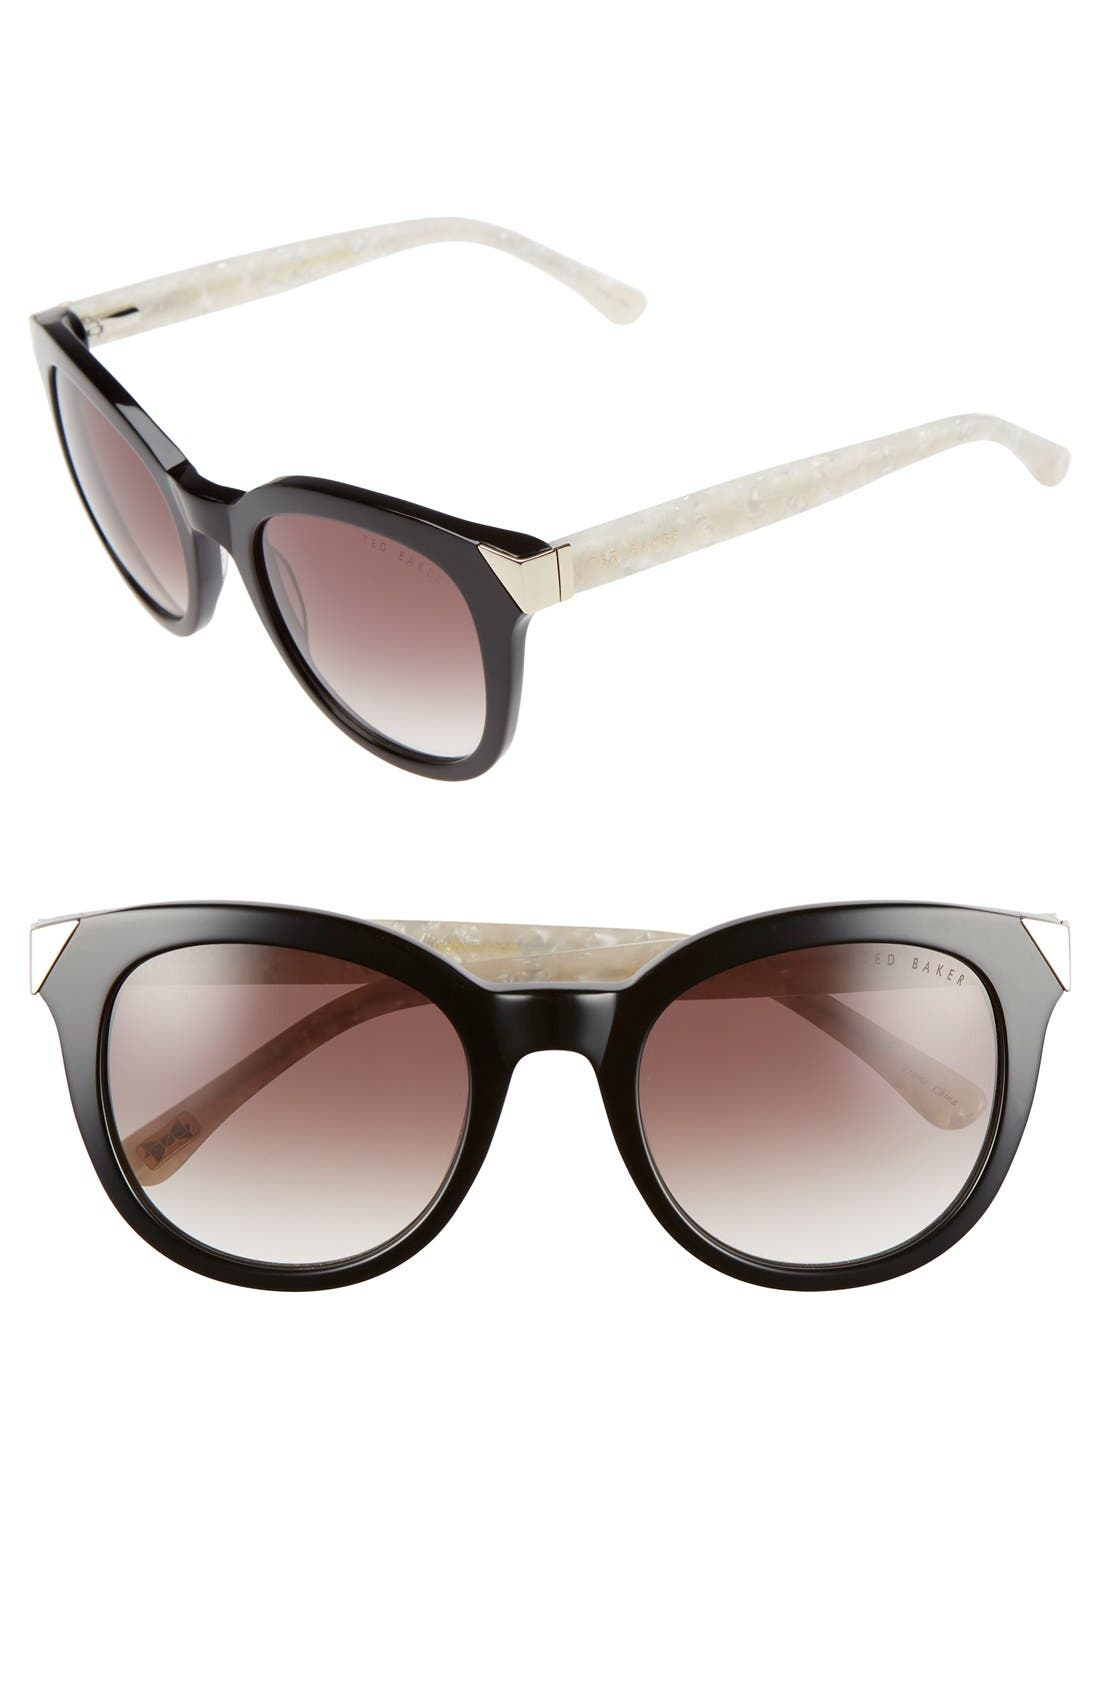 52mm Metal Accent Sunglasses,                             Main thumbnail 1, color,                             001